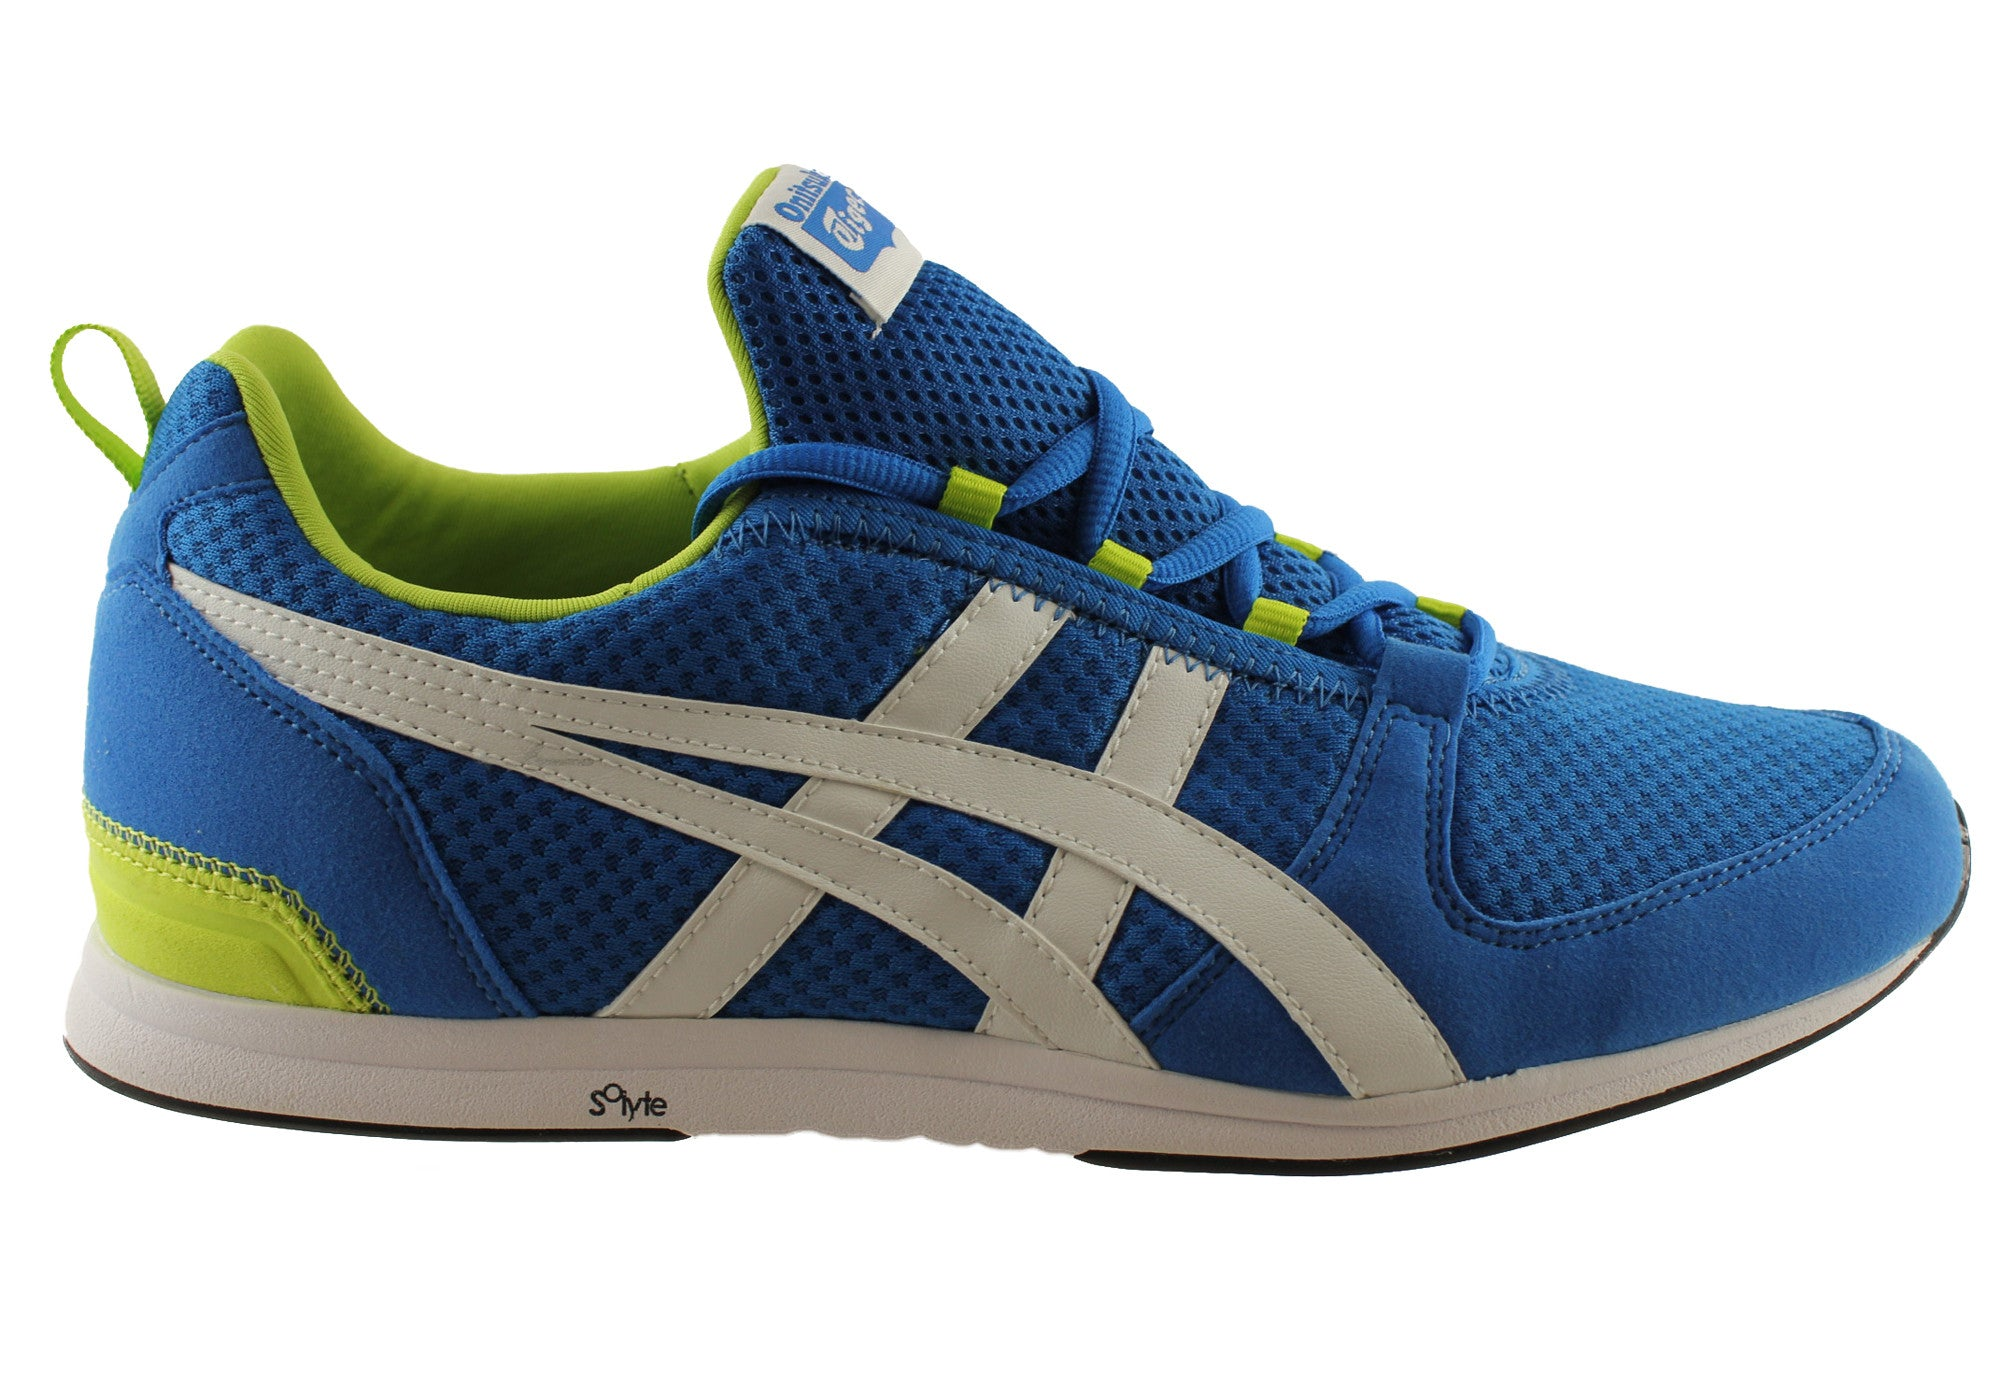 low priced 0d5ea 256da Asics Onitsuka Tiger Ult-Racer Mens Casual Shoes